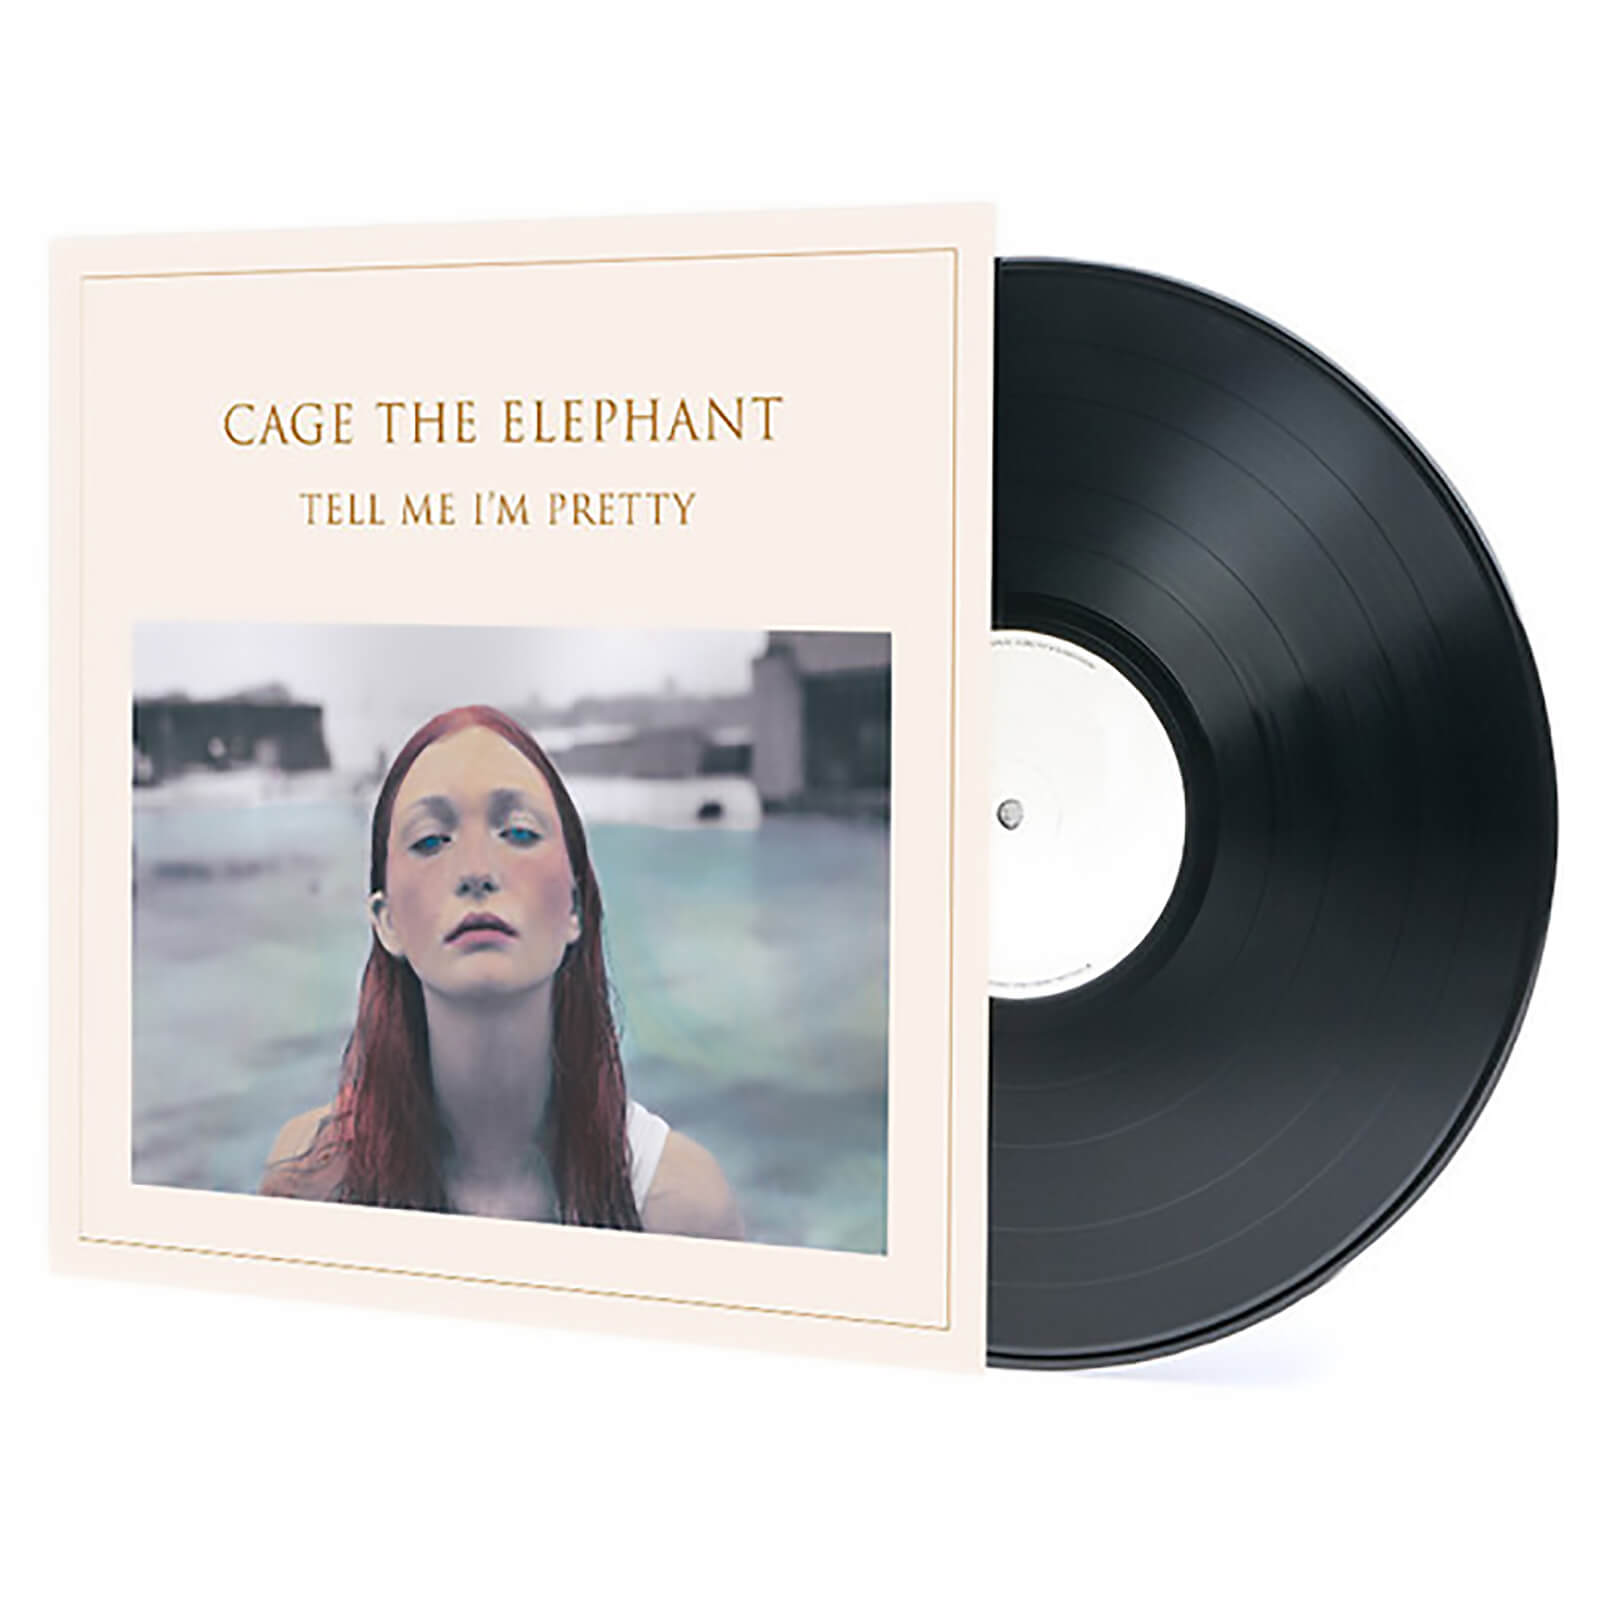 Cage The Elephant - Tell Me I